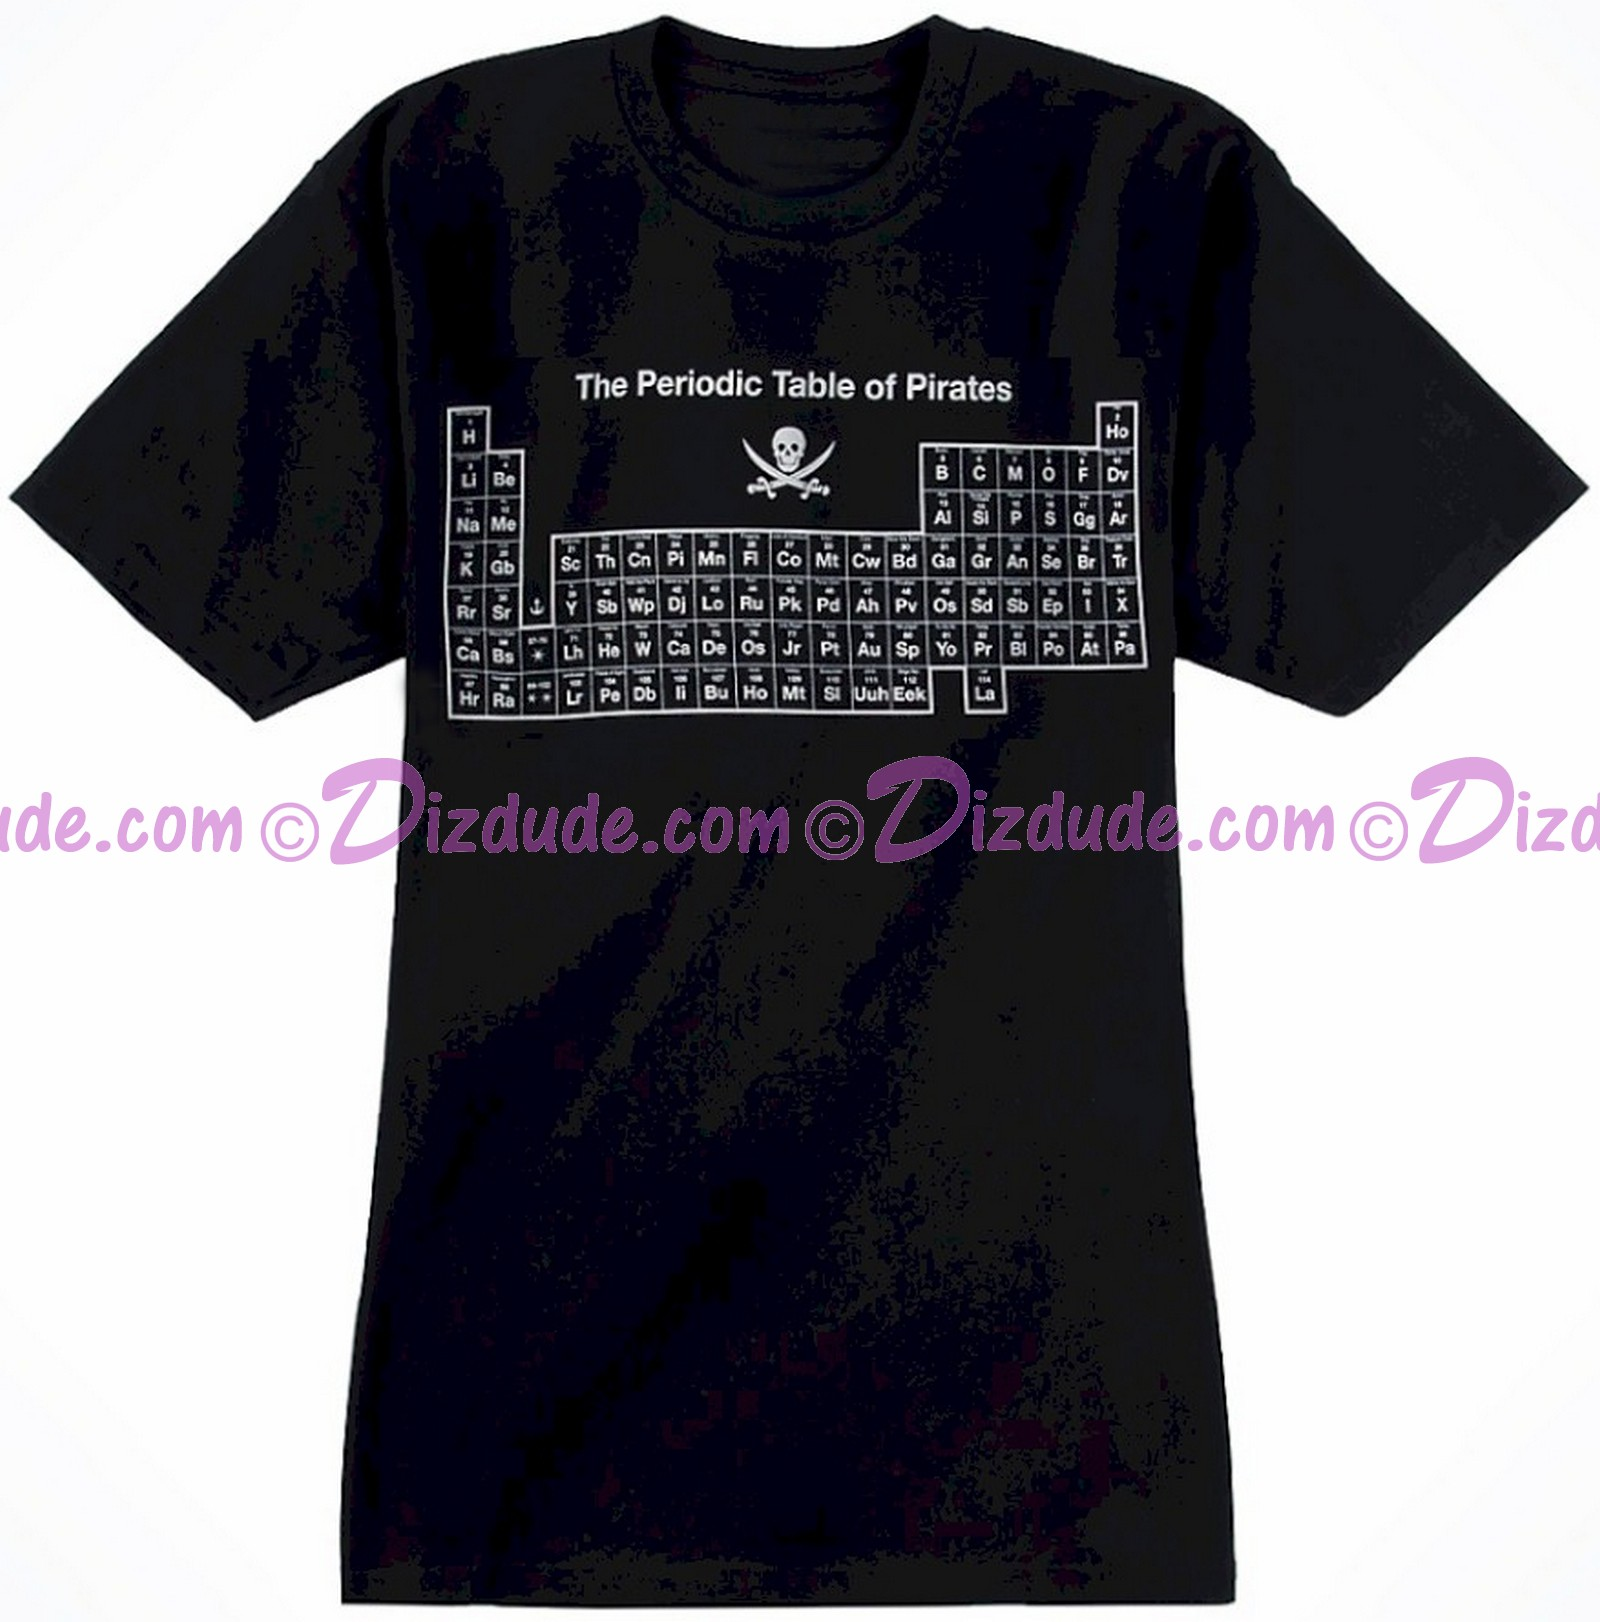 Vintage Disney Pirates of the Caribbean ~ The Periodic Table of Pirates T-shirt (Tee, Tshirt or T shirt)